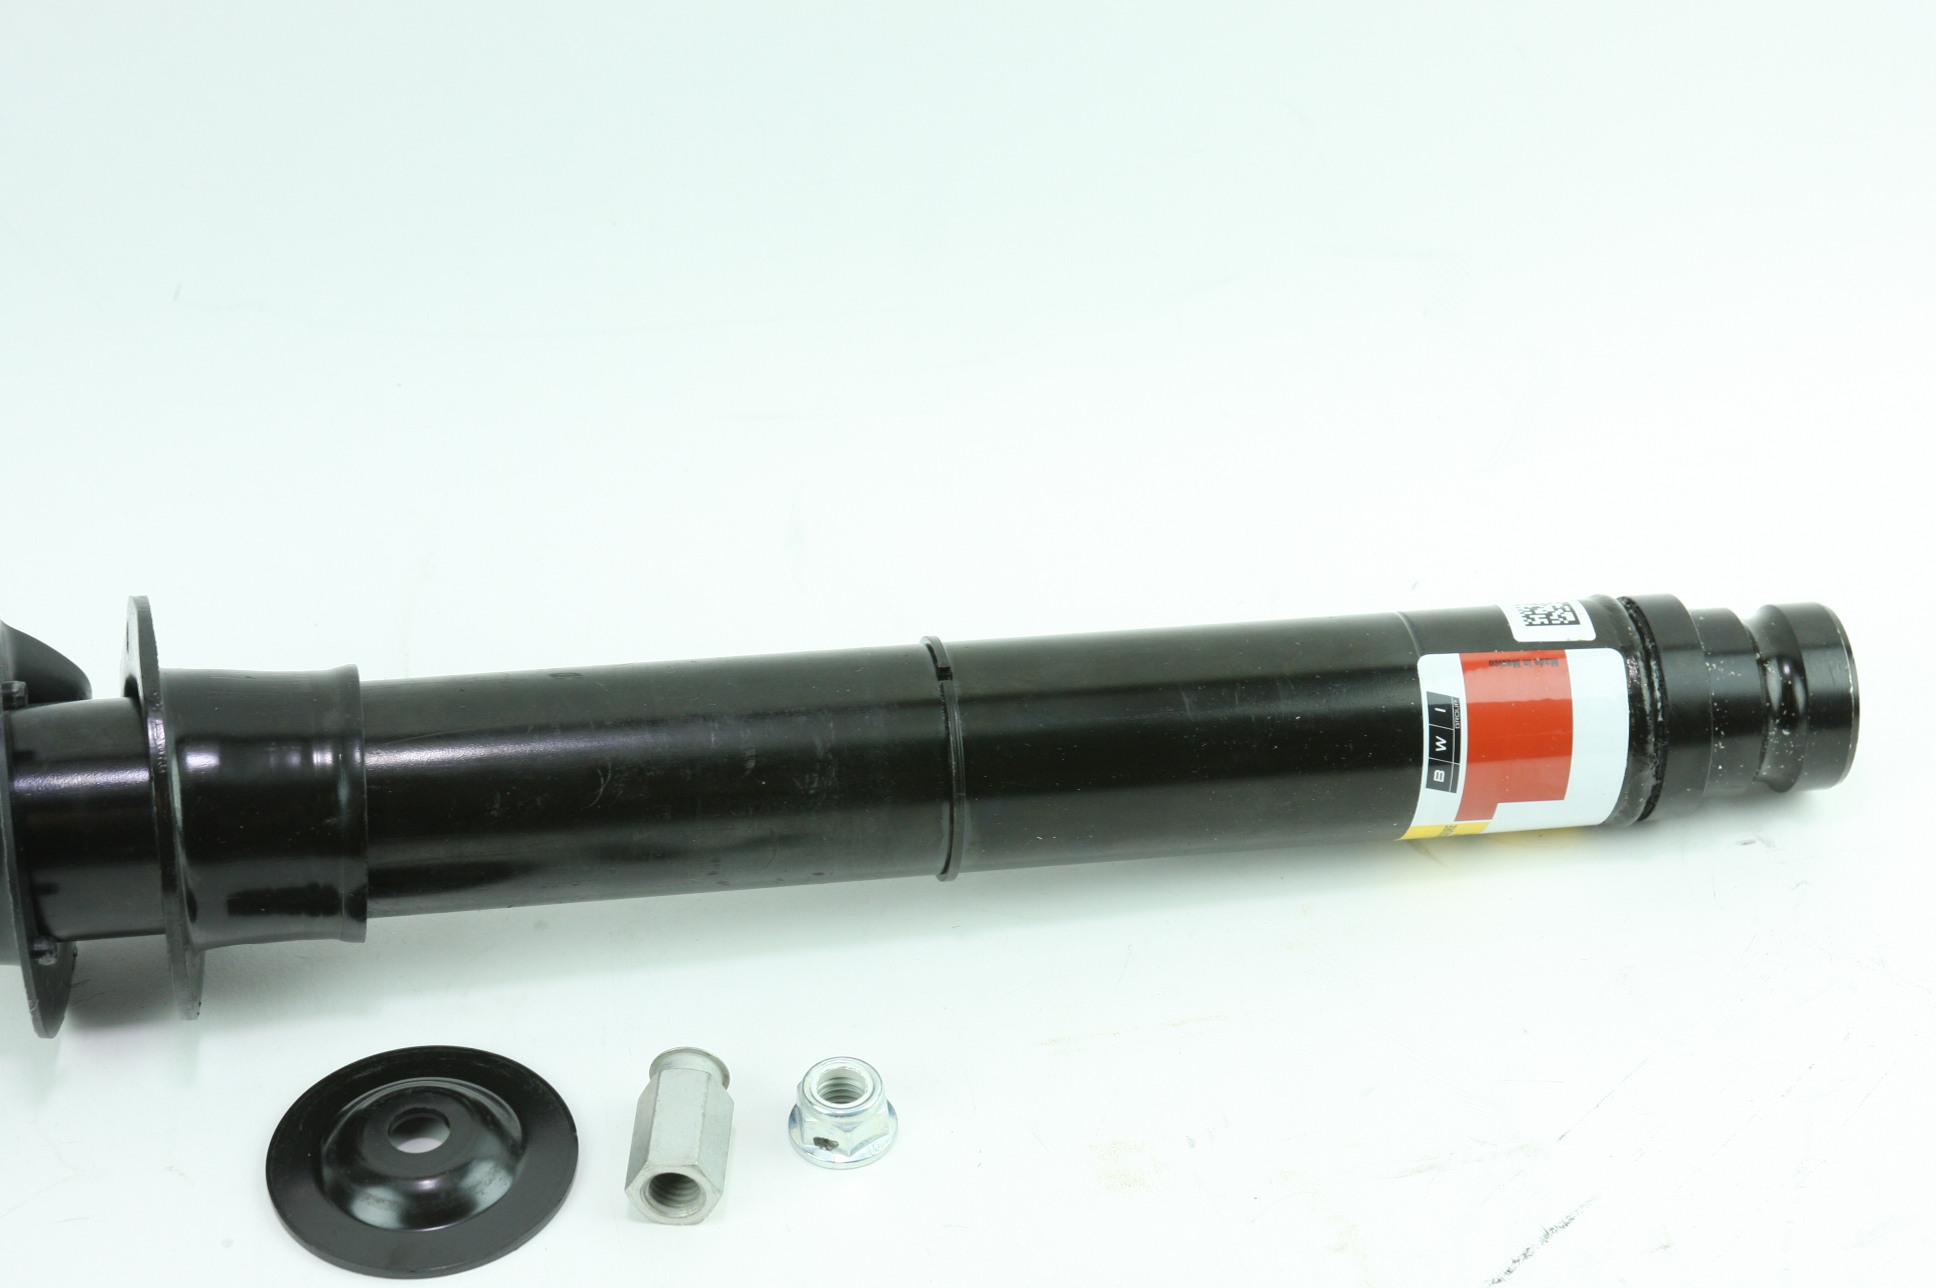 ** New OEM 580-436 GM 19300028 Shock Absorber Kit Front LH/RH 07-10 Cadillac STS - image 6